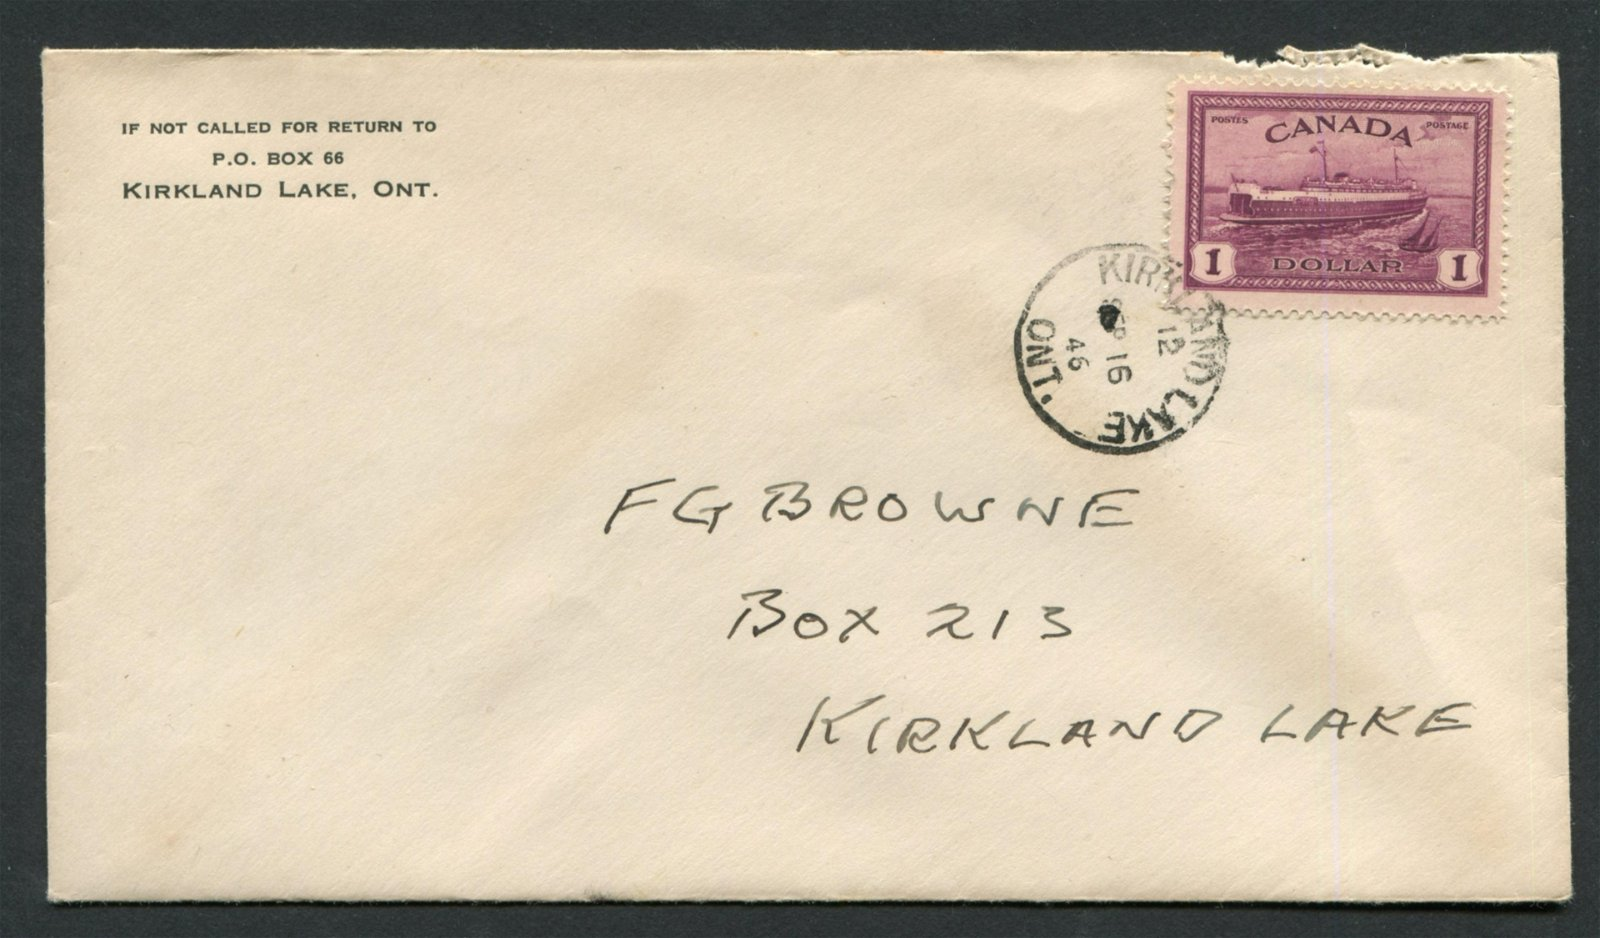 Canada 1946 #273 $1 Red Violet FDC